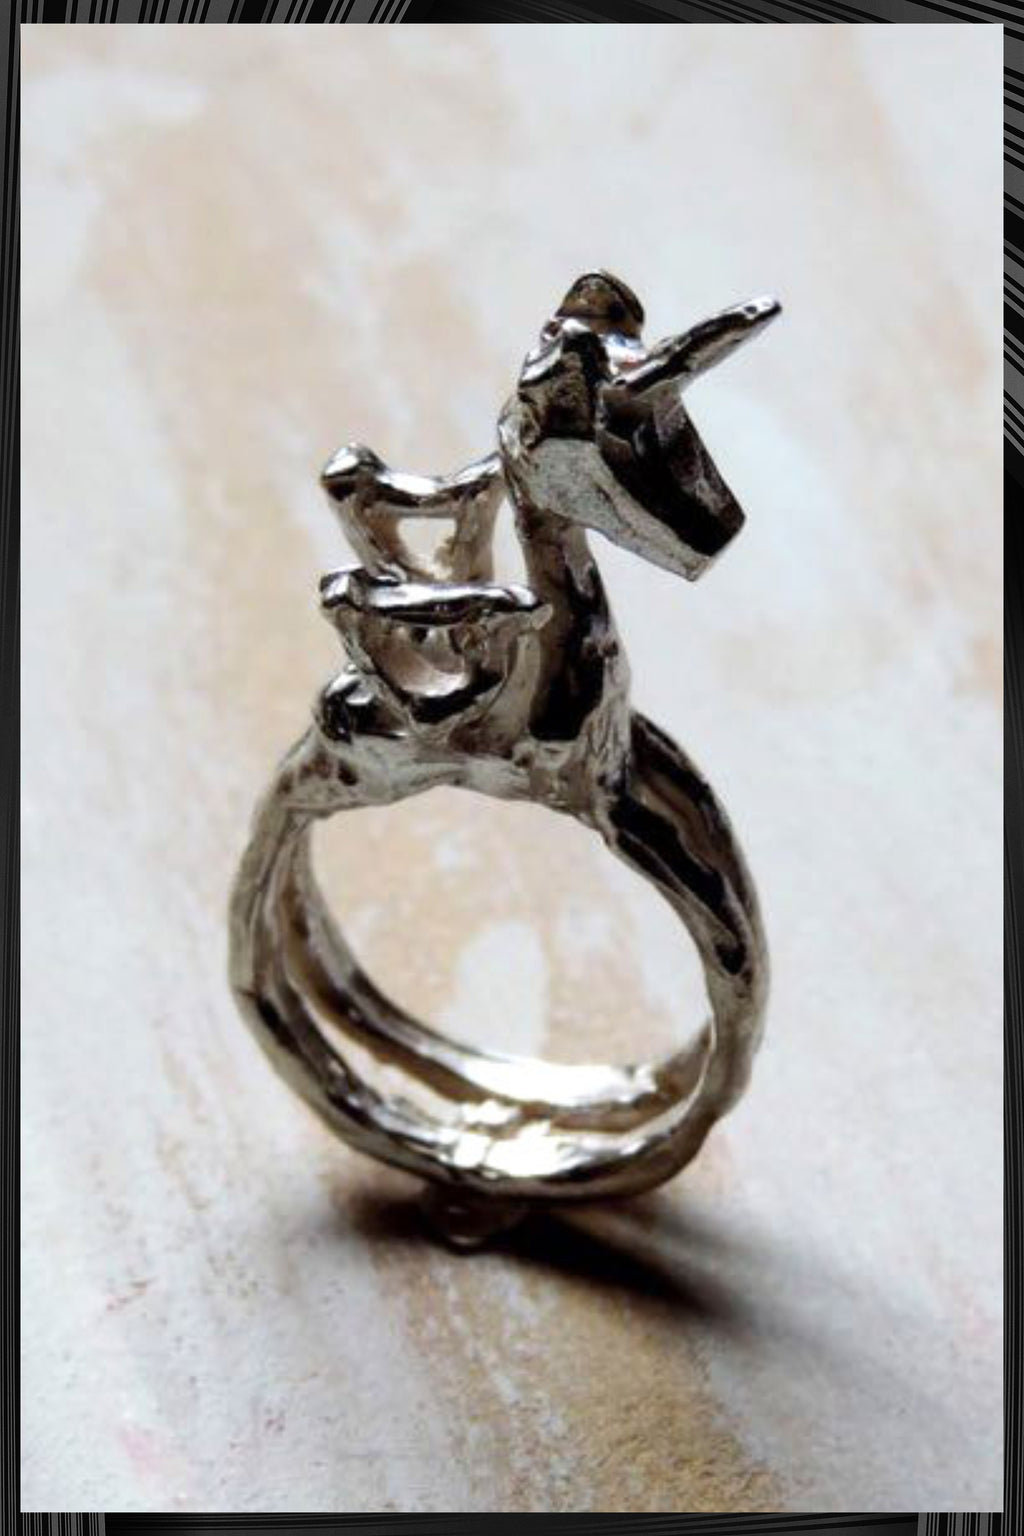 The Unicorn Ring | Free Delivery - Quick Shipping